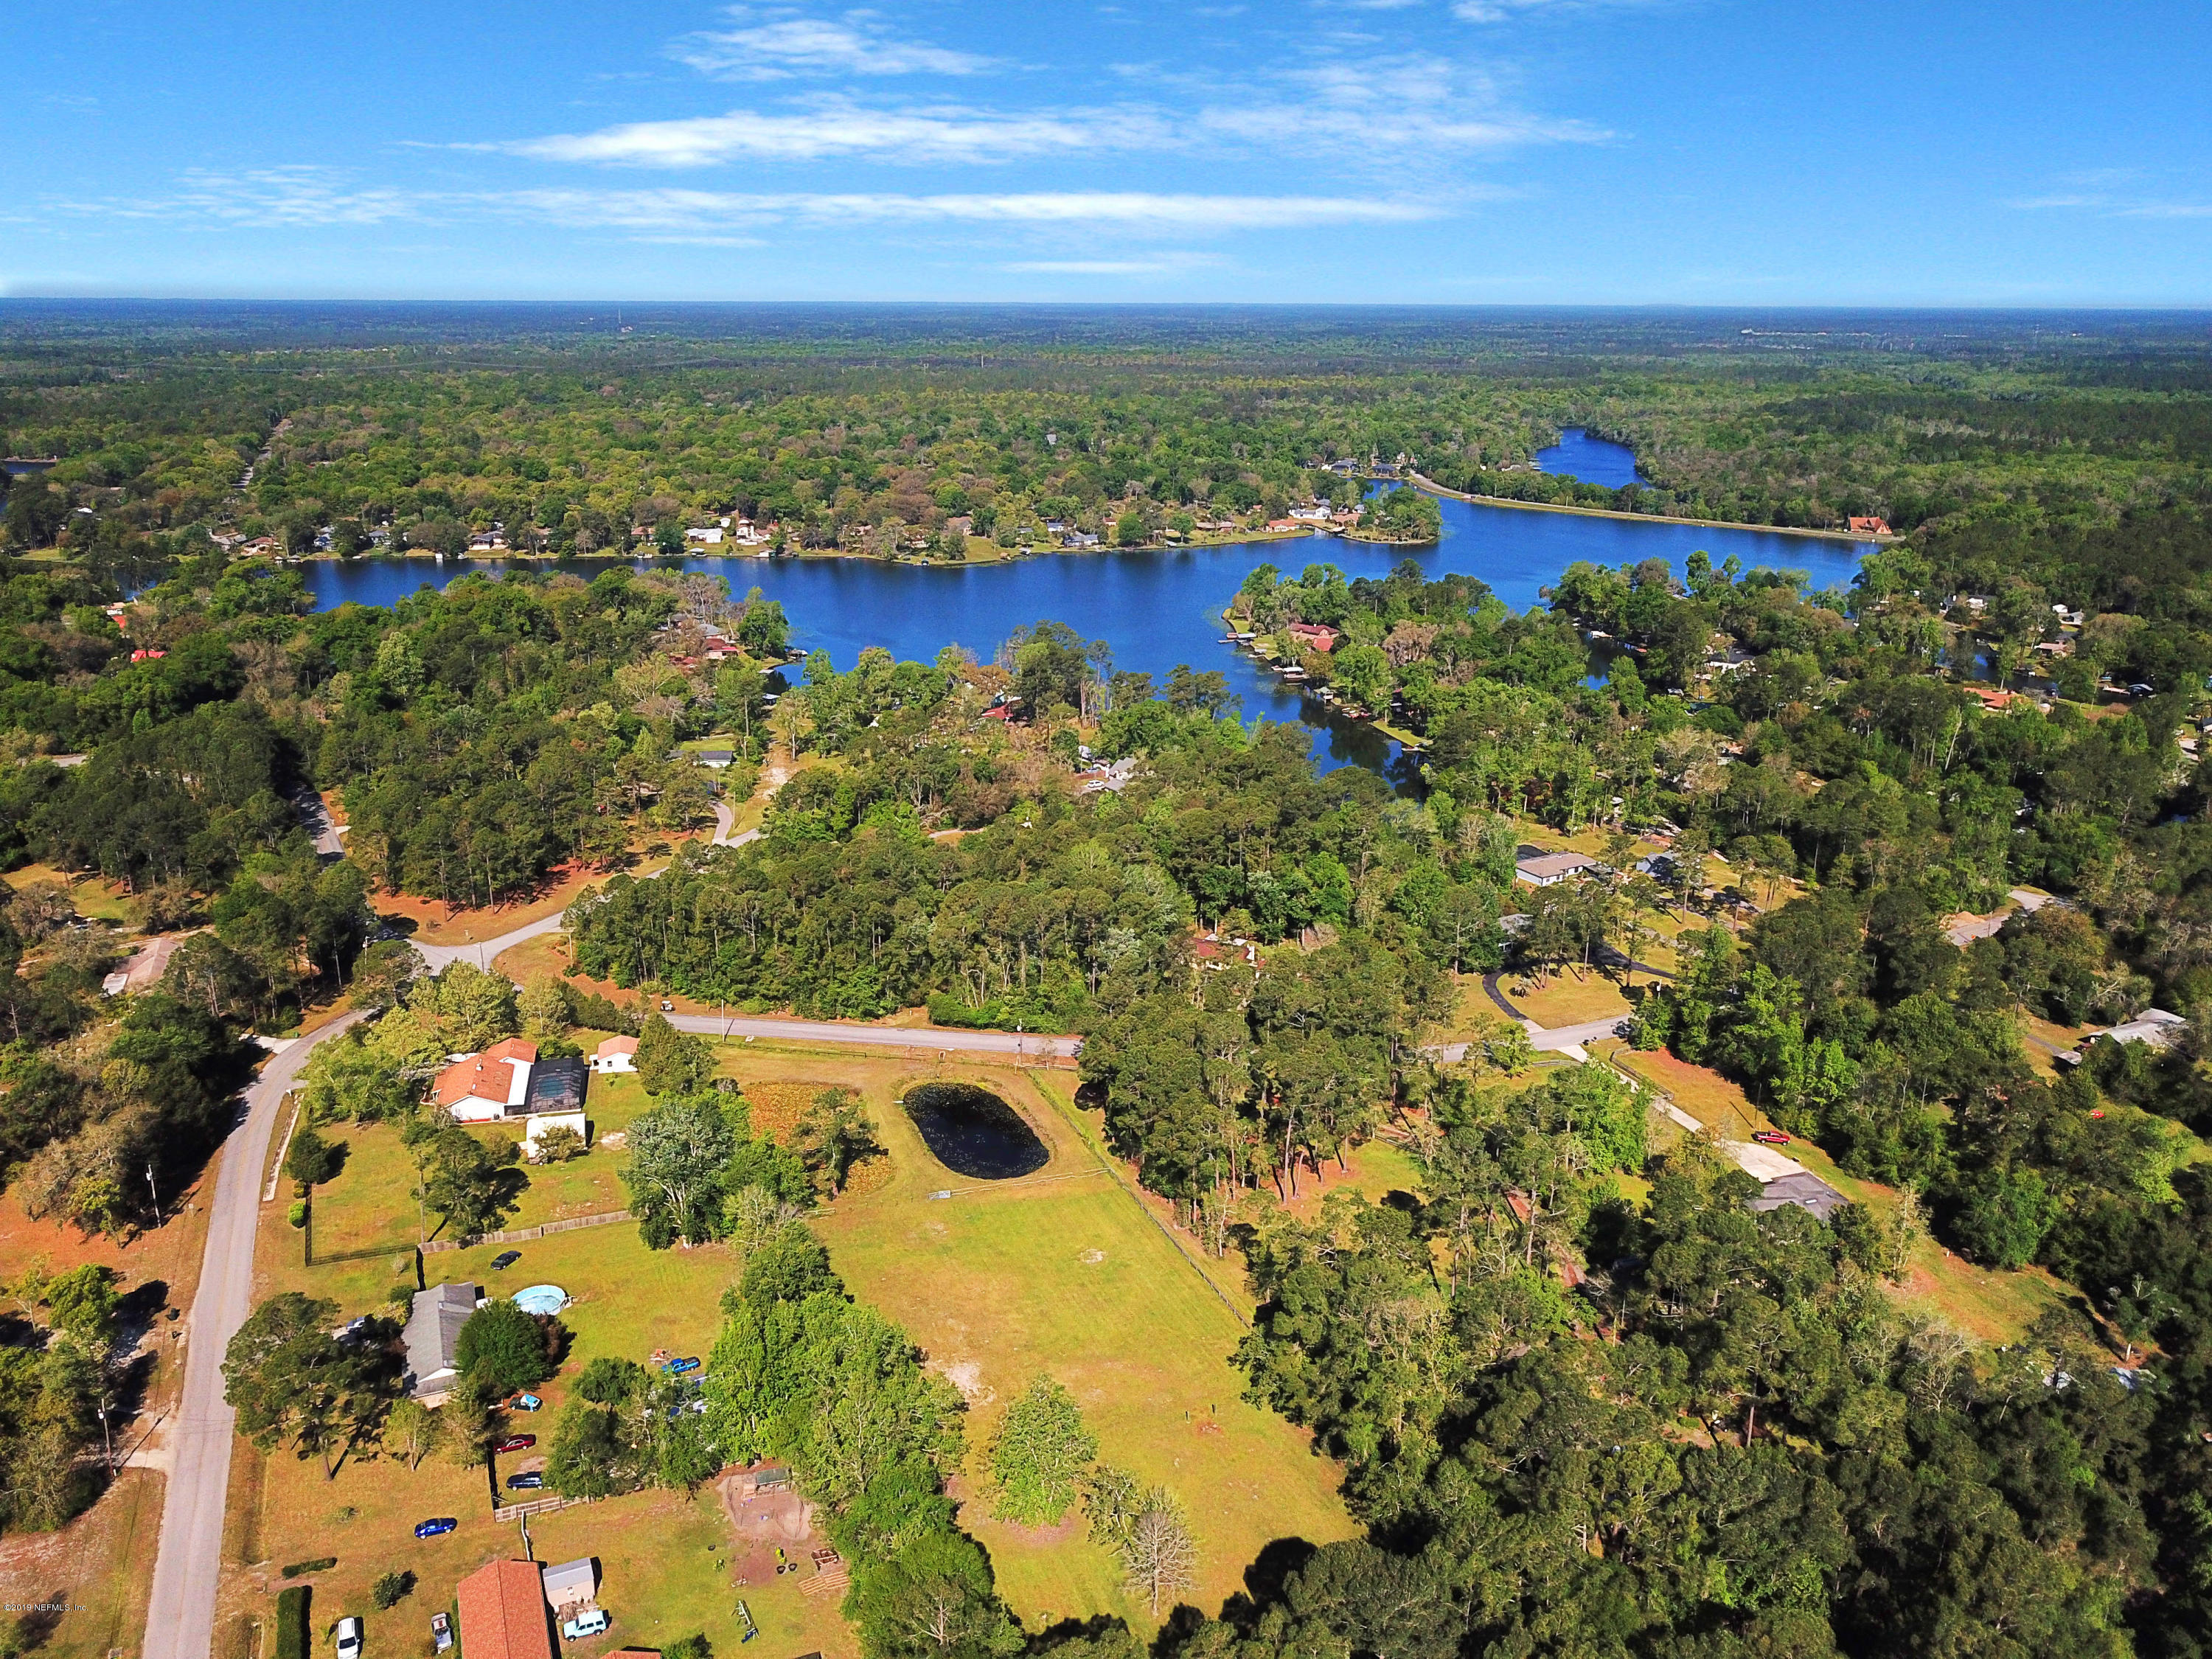 407 WESLEY, GREEN COVE SPRINGS, FLORIDA 32043, ,Vacant land,For sale,Lake Asbury,MLS,987993